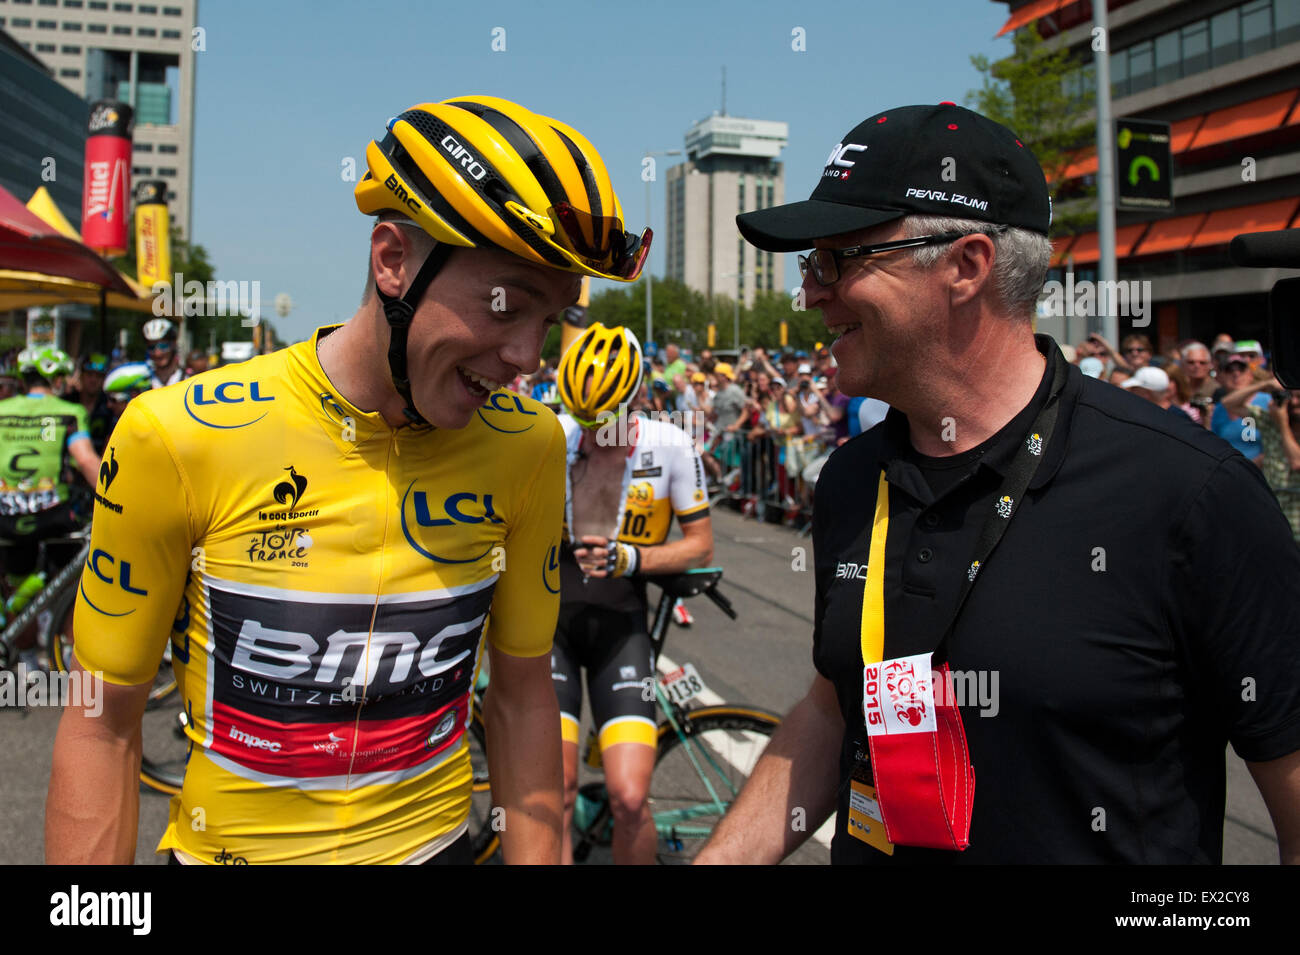 Utrecht, Netherlands. 04th July, 2015. Rohan Dennis punctures ahead of stage 2 of the 2015 Tour De France Utrecht - Stock Image